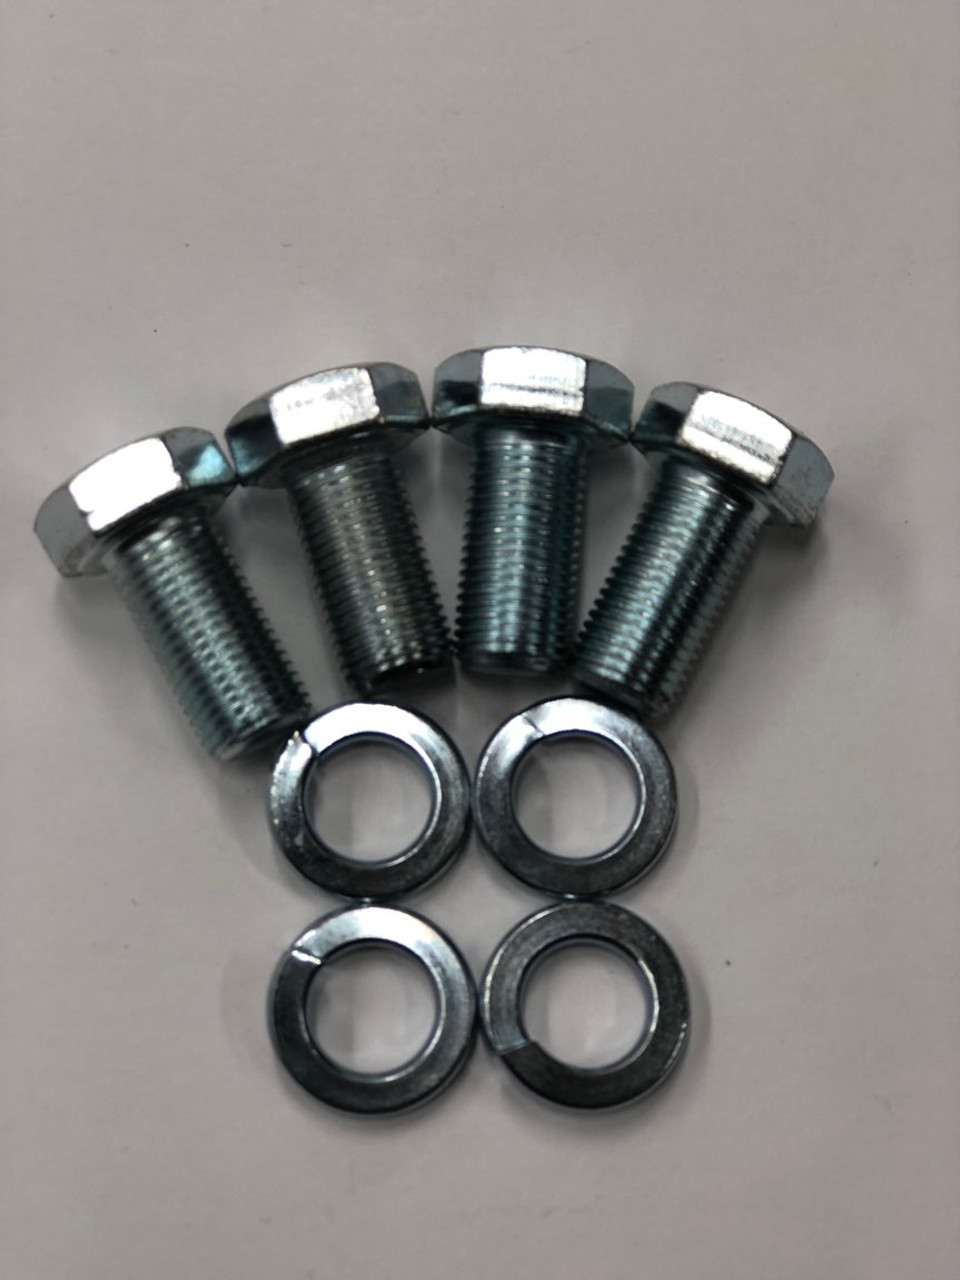 4 Cylinder Bolts